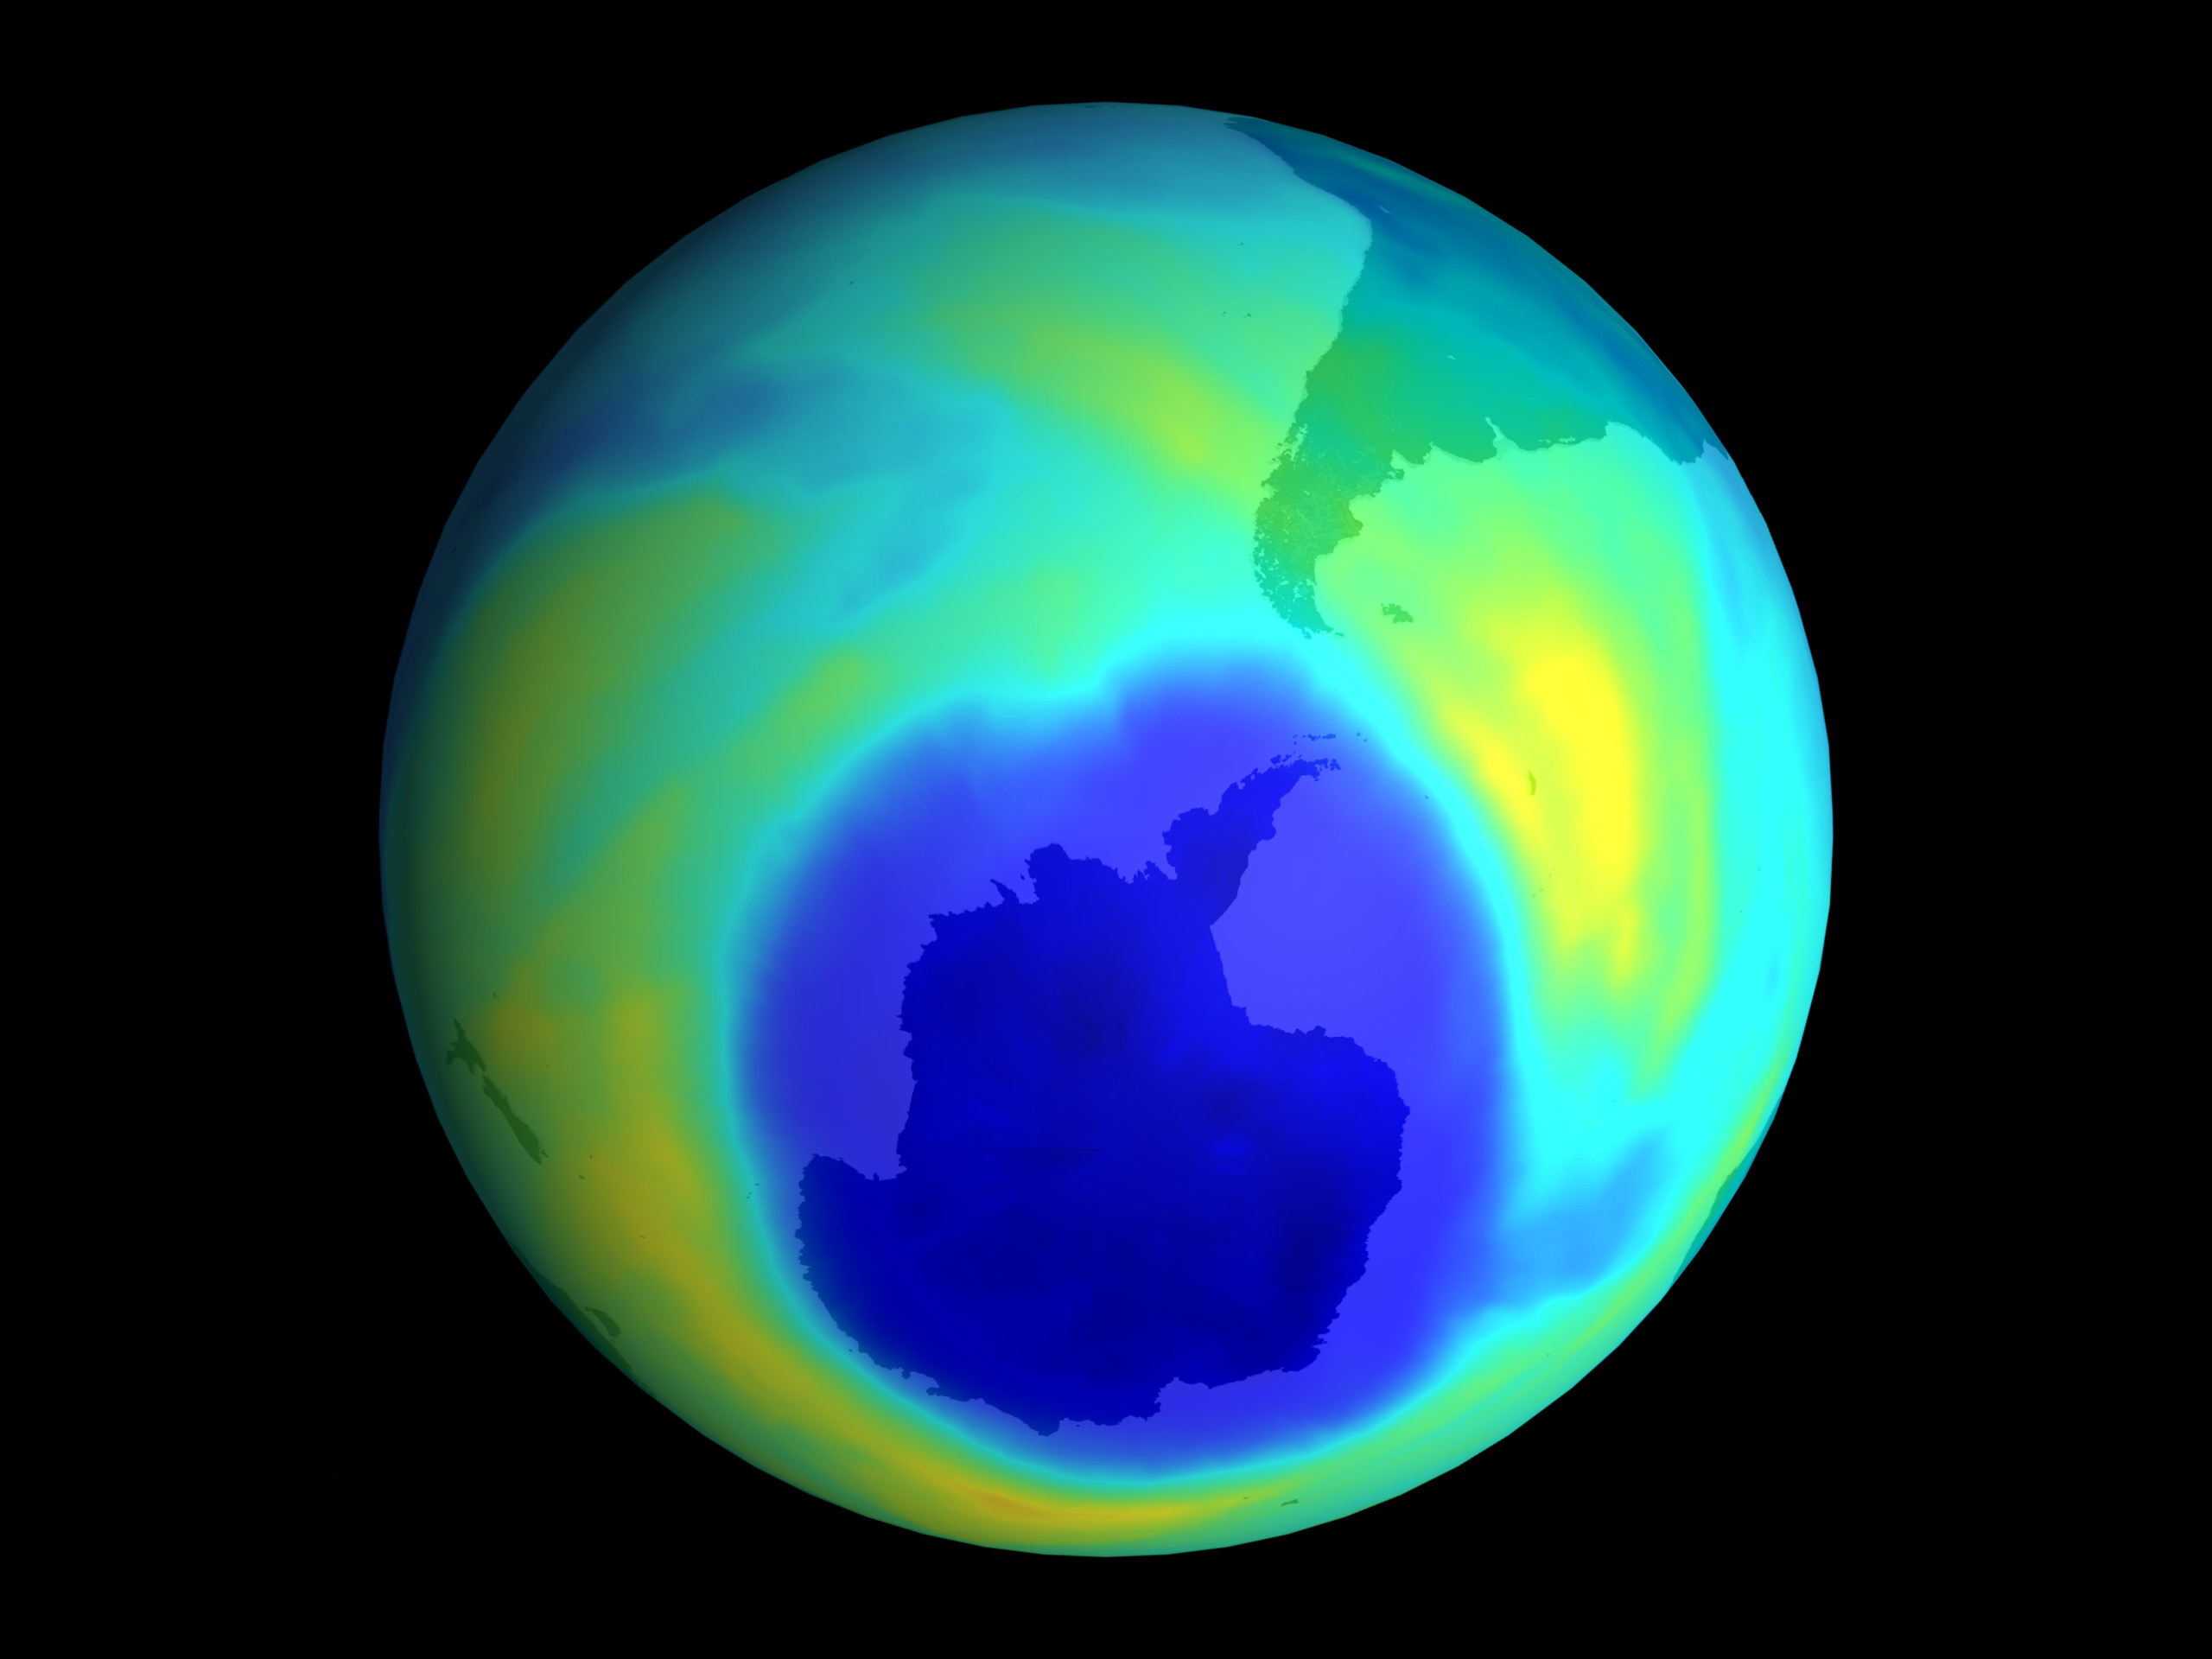 hole might slightly warm planet ozone hole might slightly warm planet